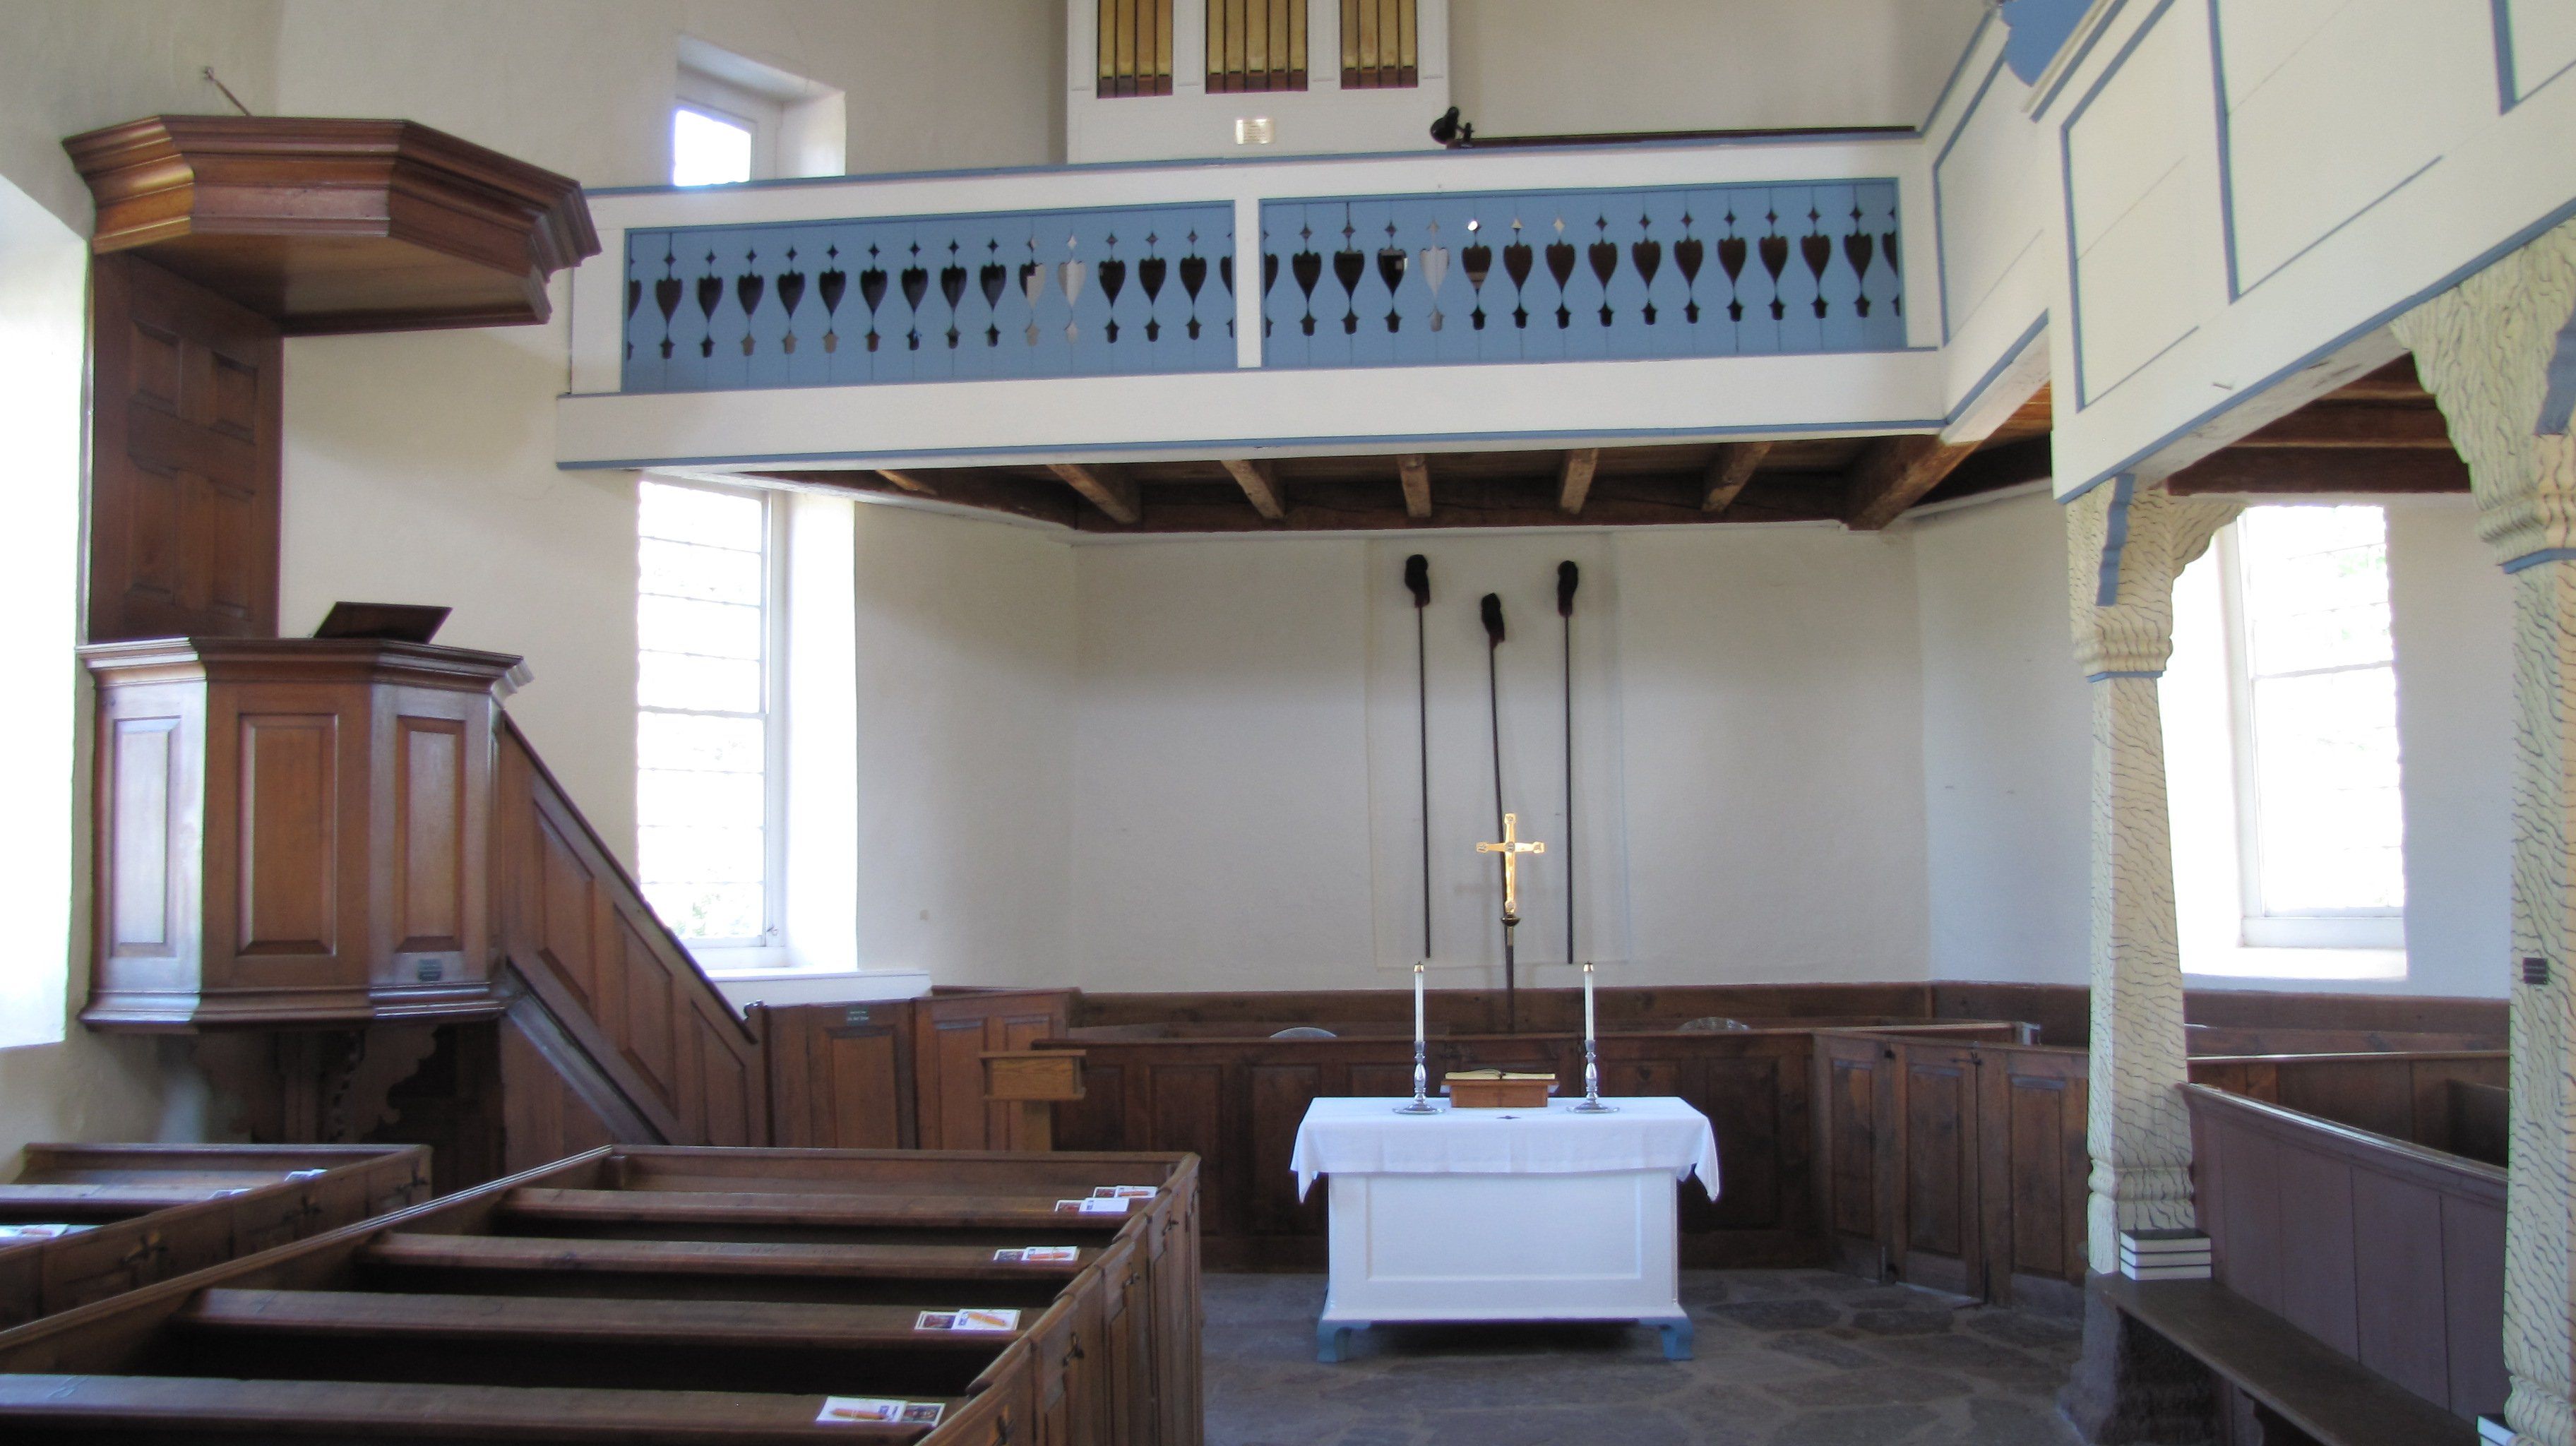 The church's interior, notice the red walnut pulpit on the left and organ loft which was added in 1752.